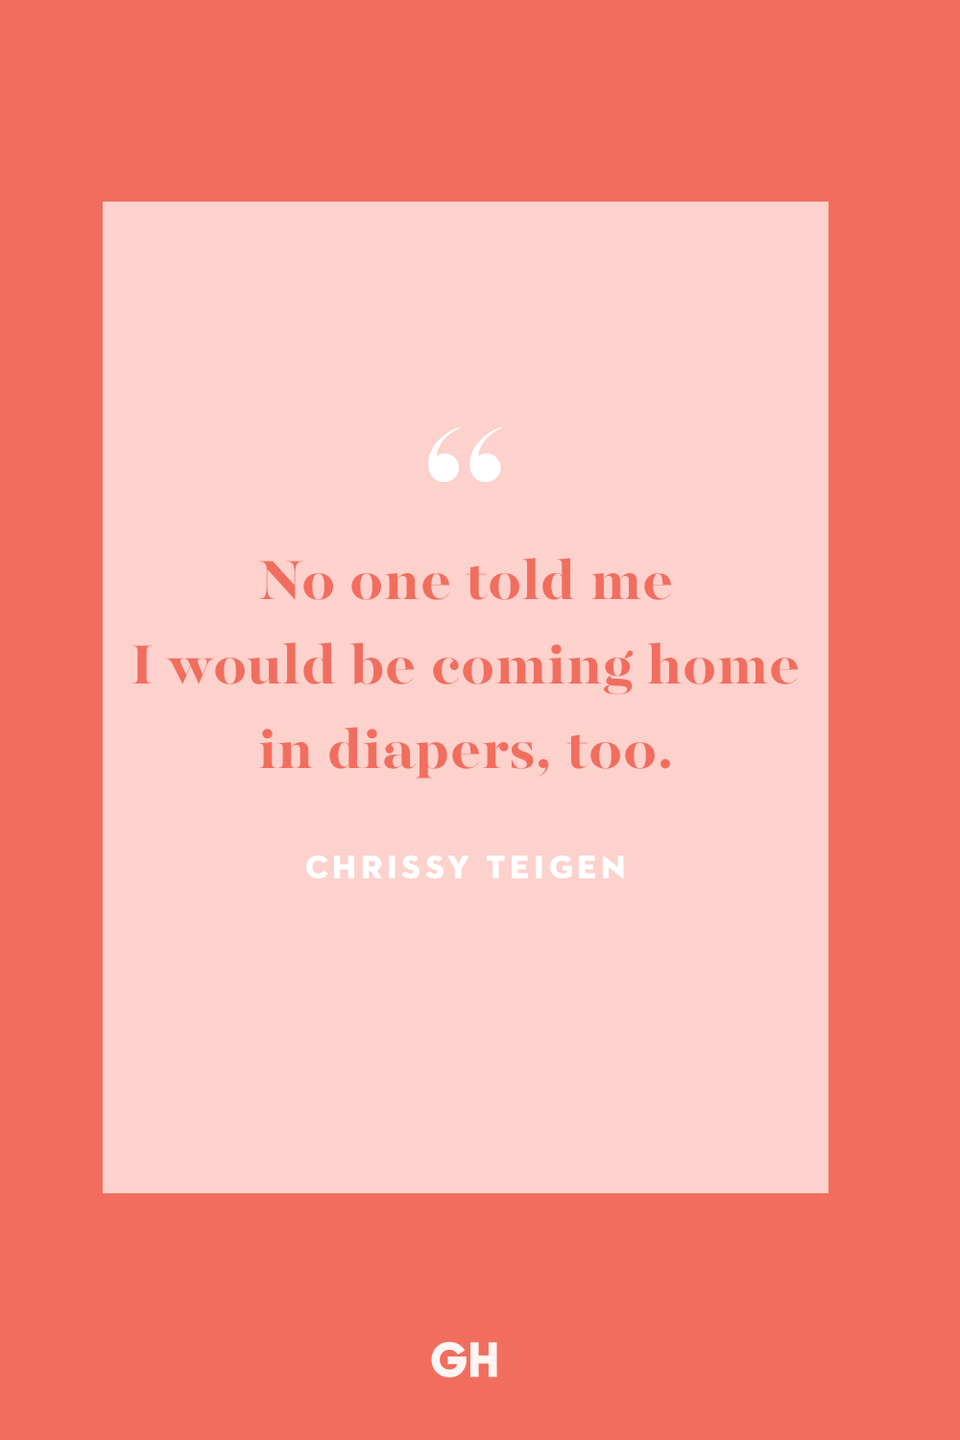 <p>No one told me I would be coming home in diapers, too.</p>